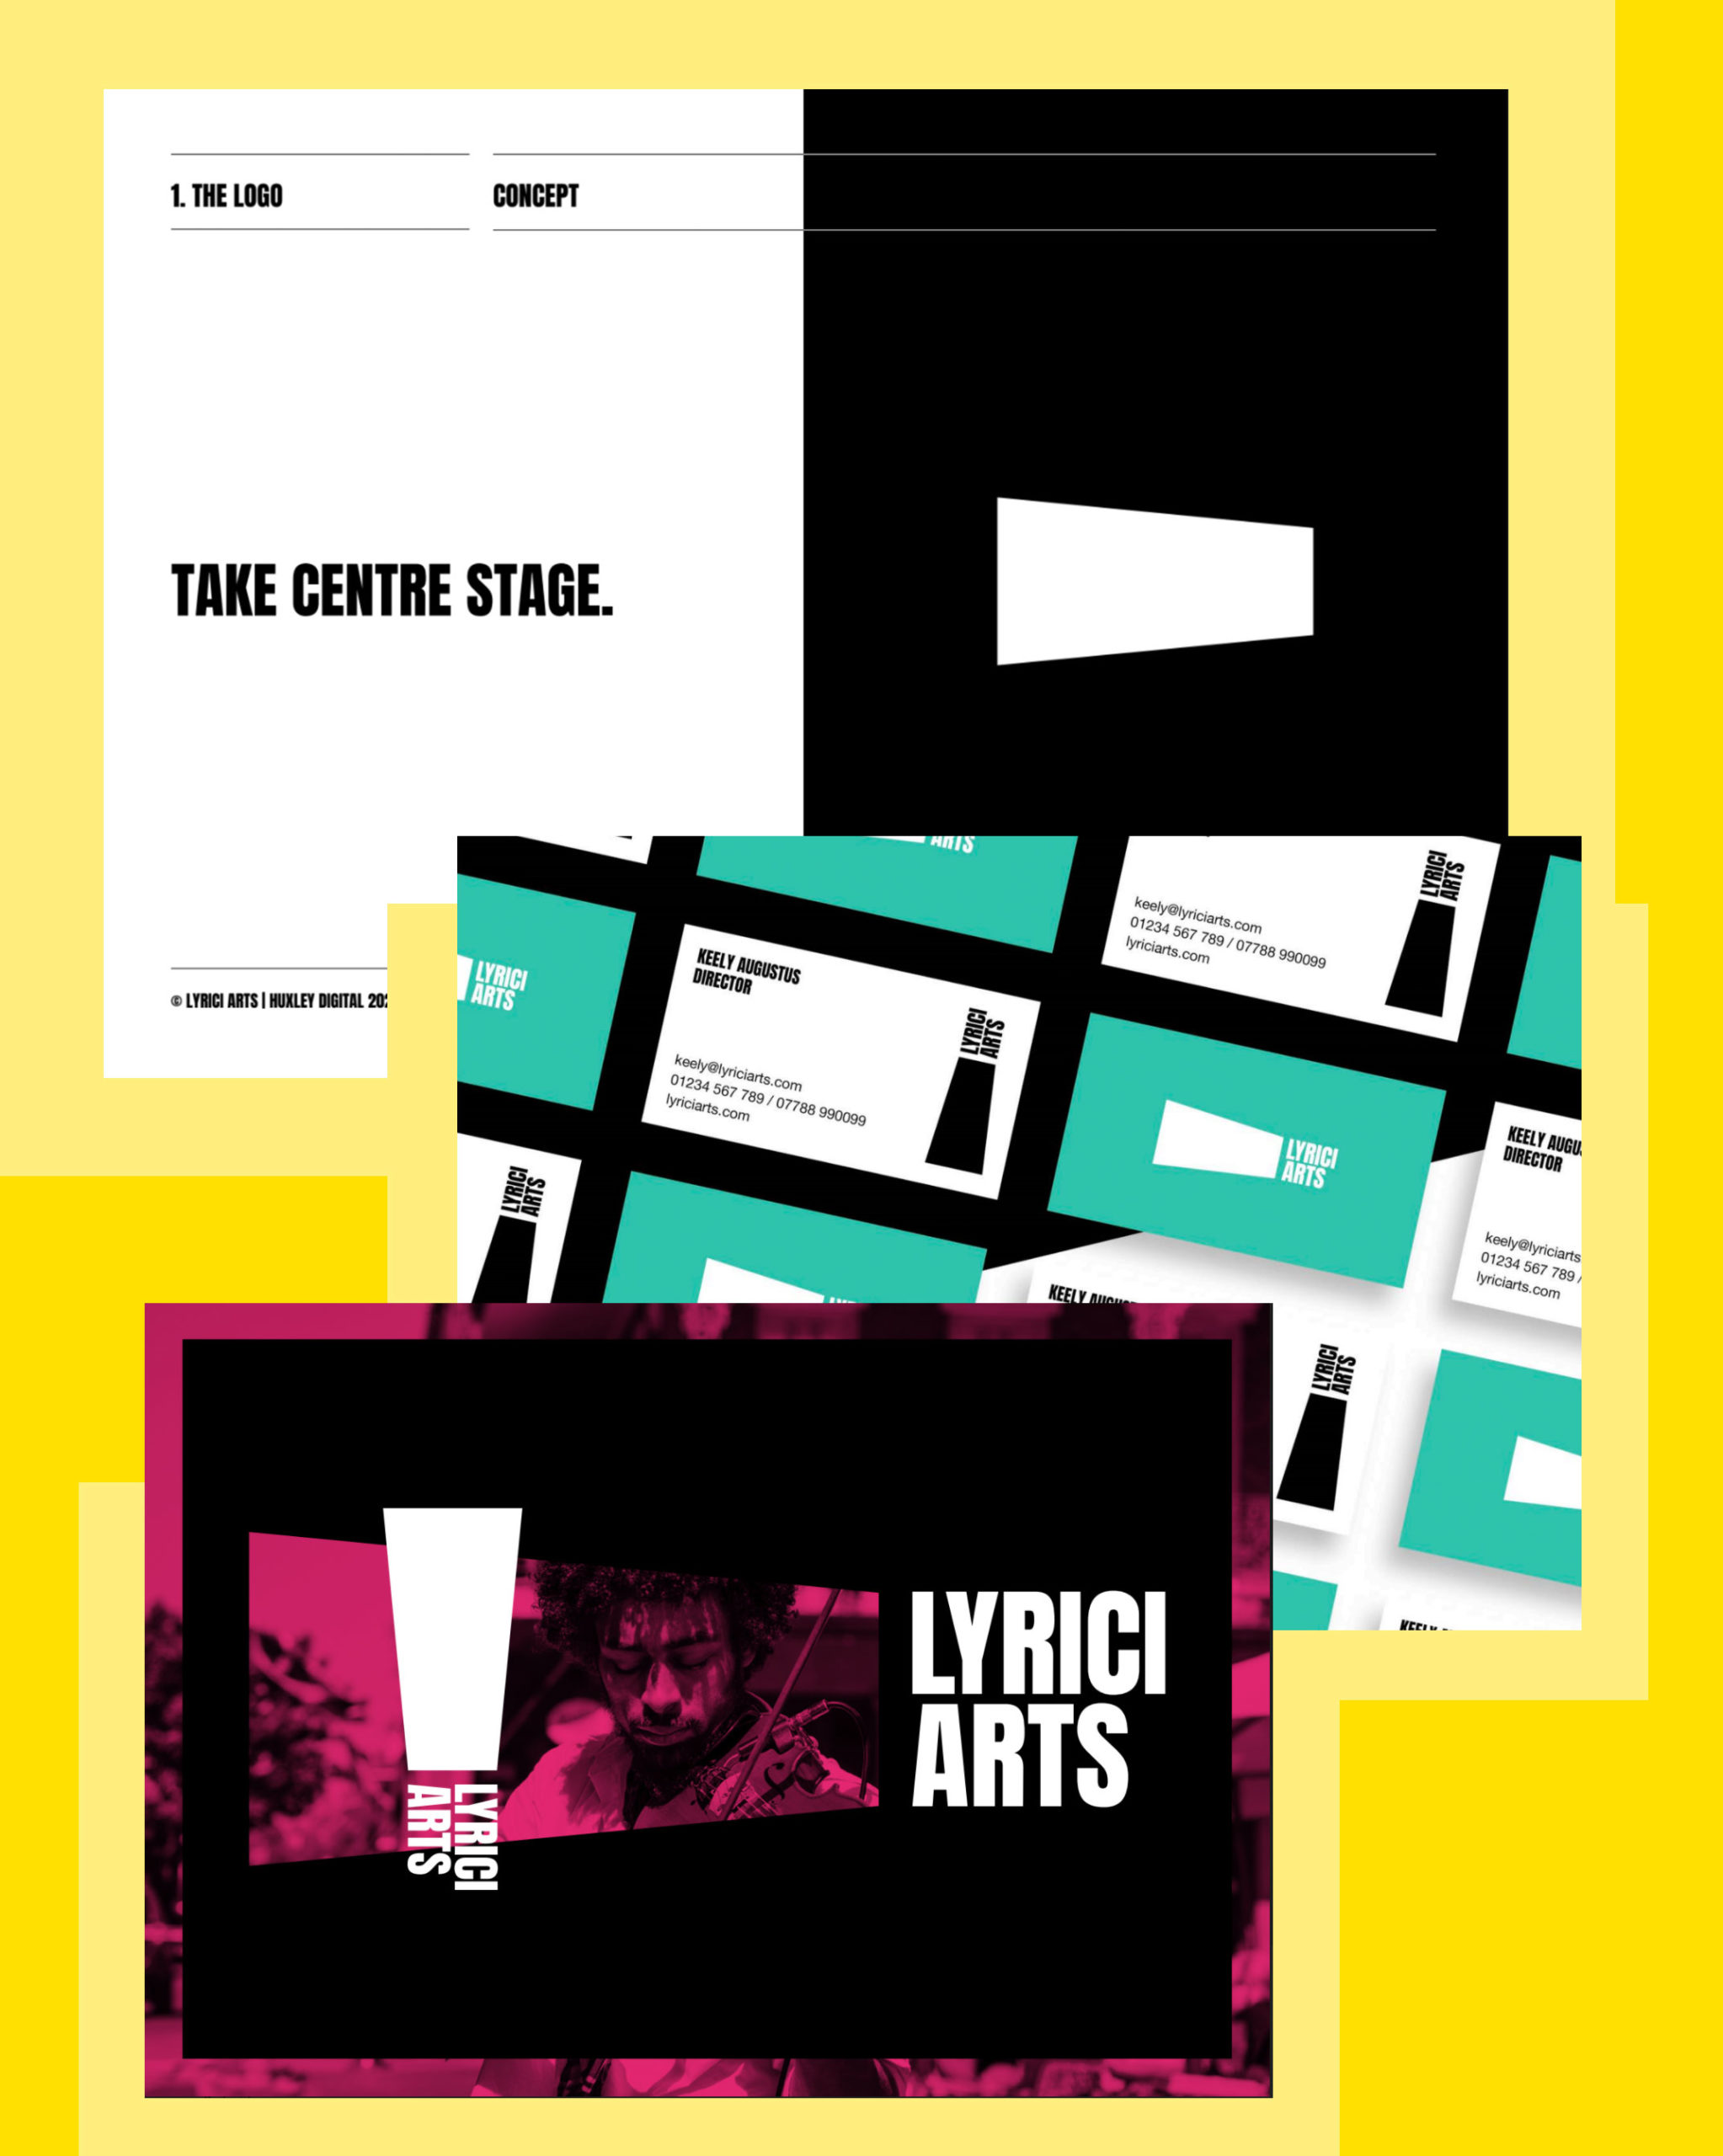 A selection of pages from the Lyrici Brand Guidelines